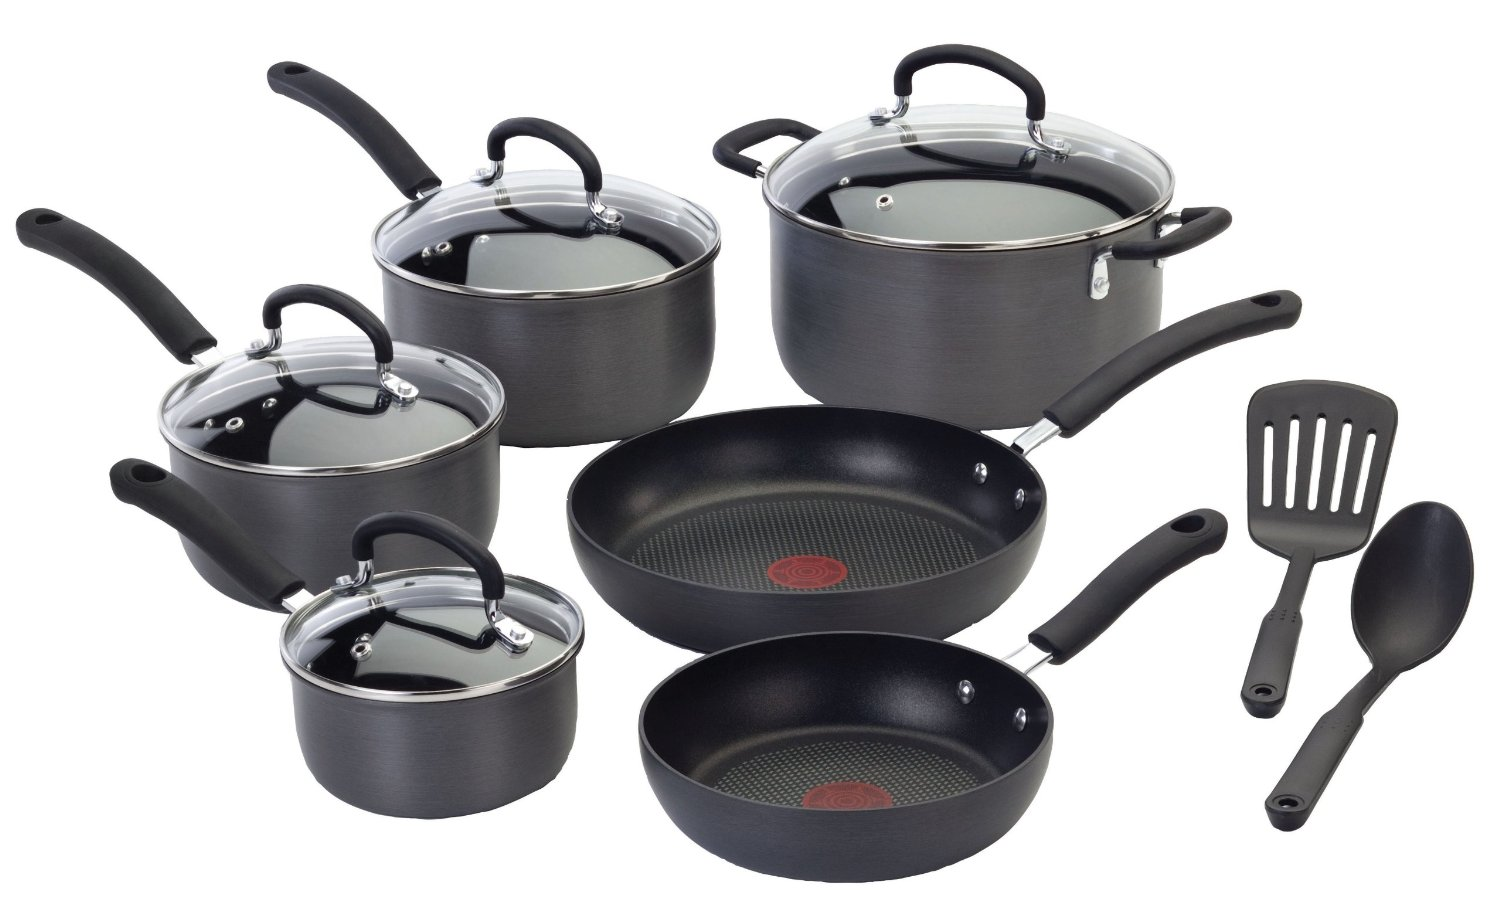 is a great deal if you are looking for dishwasher safe T-fal cookware ...